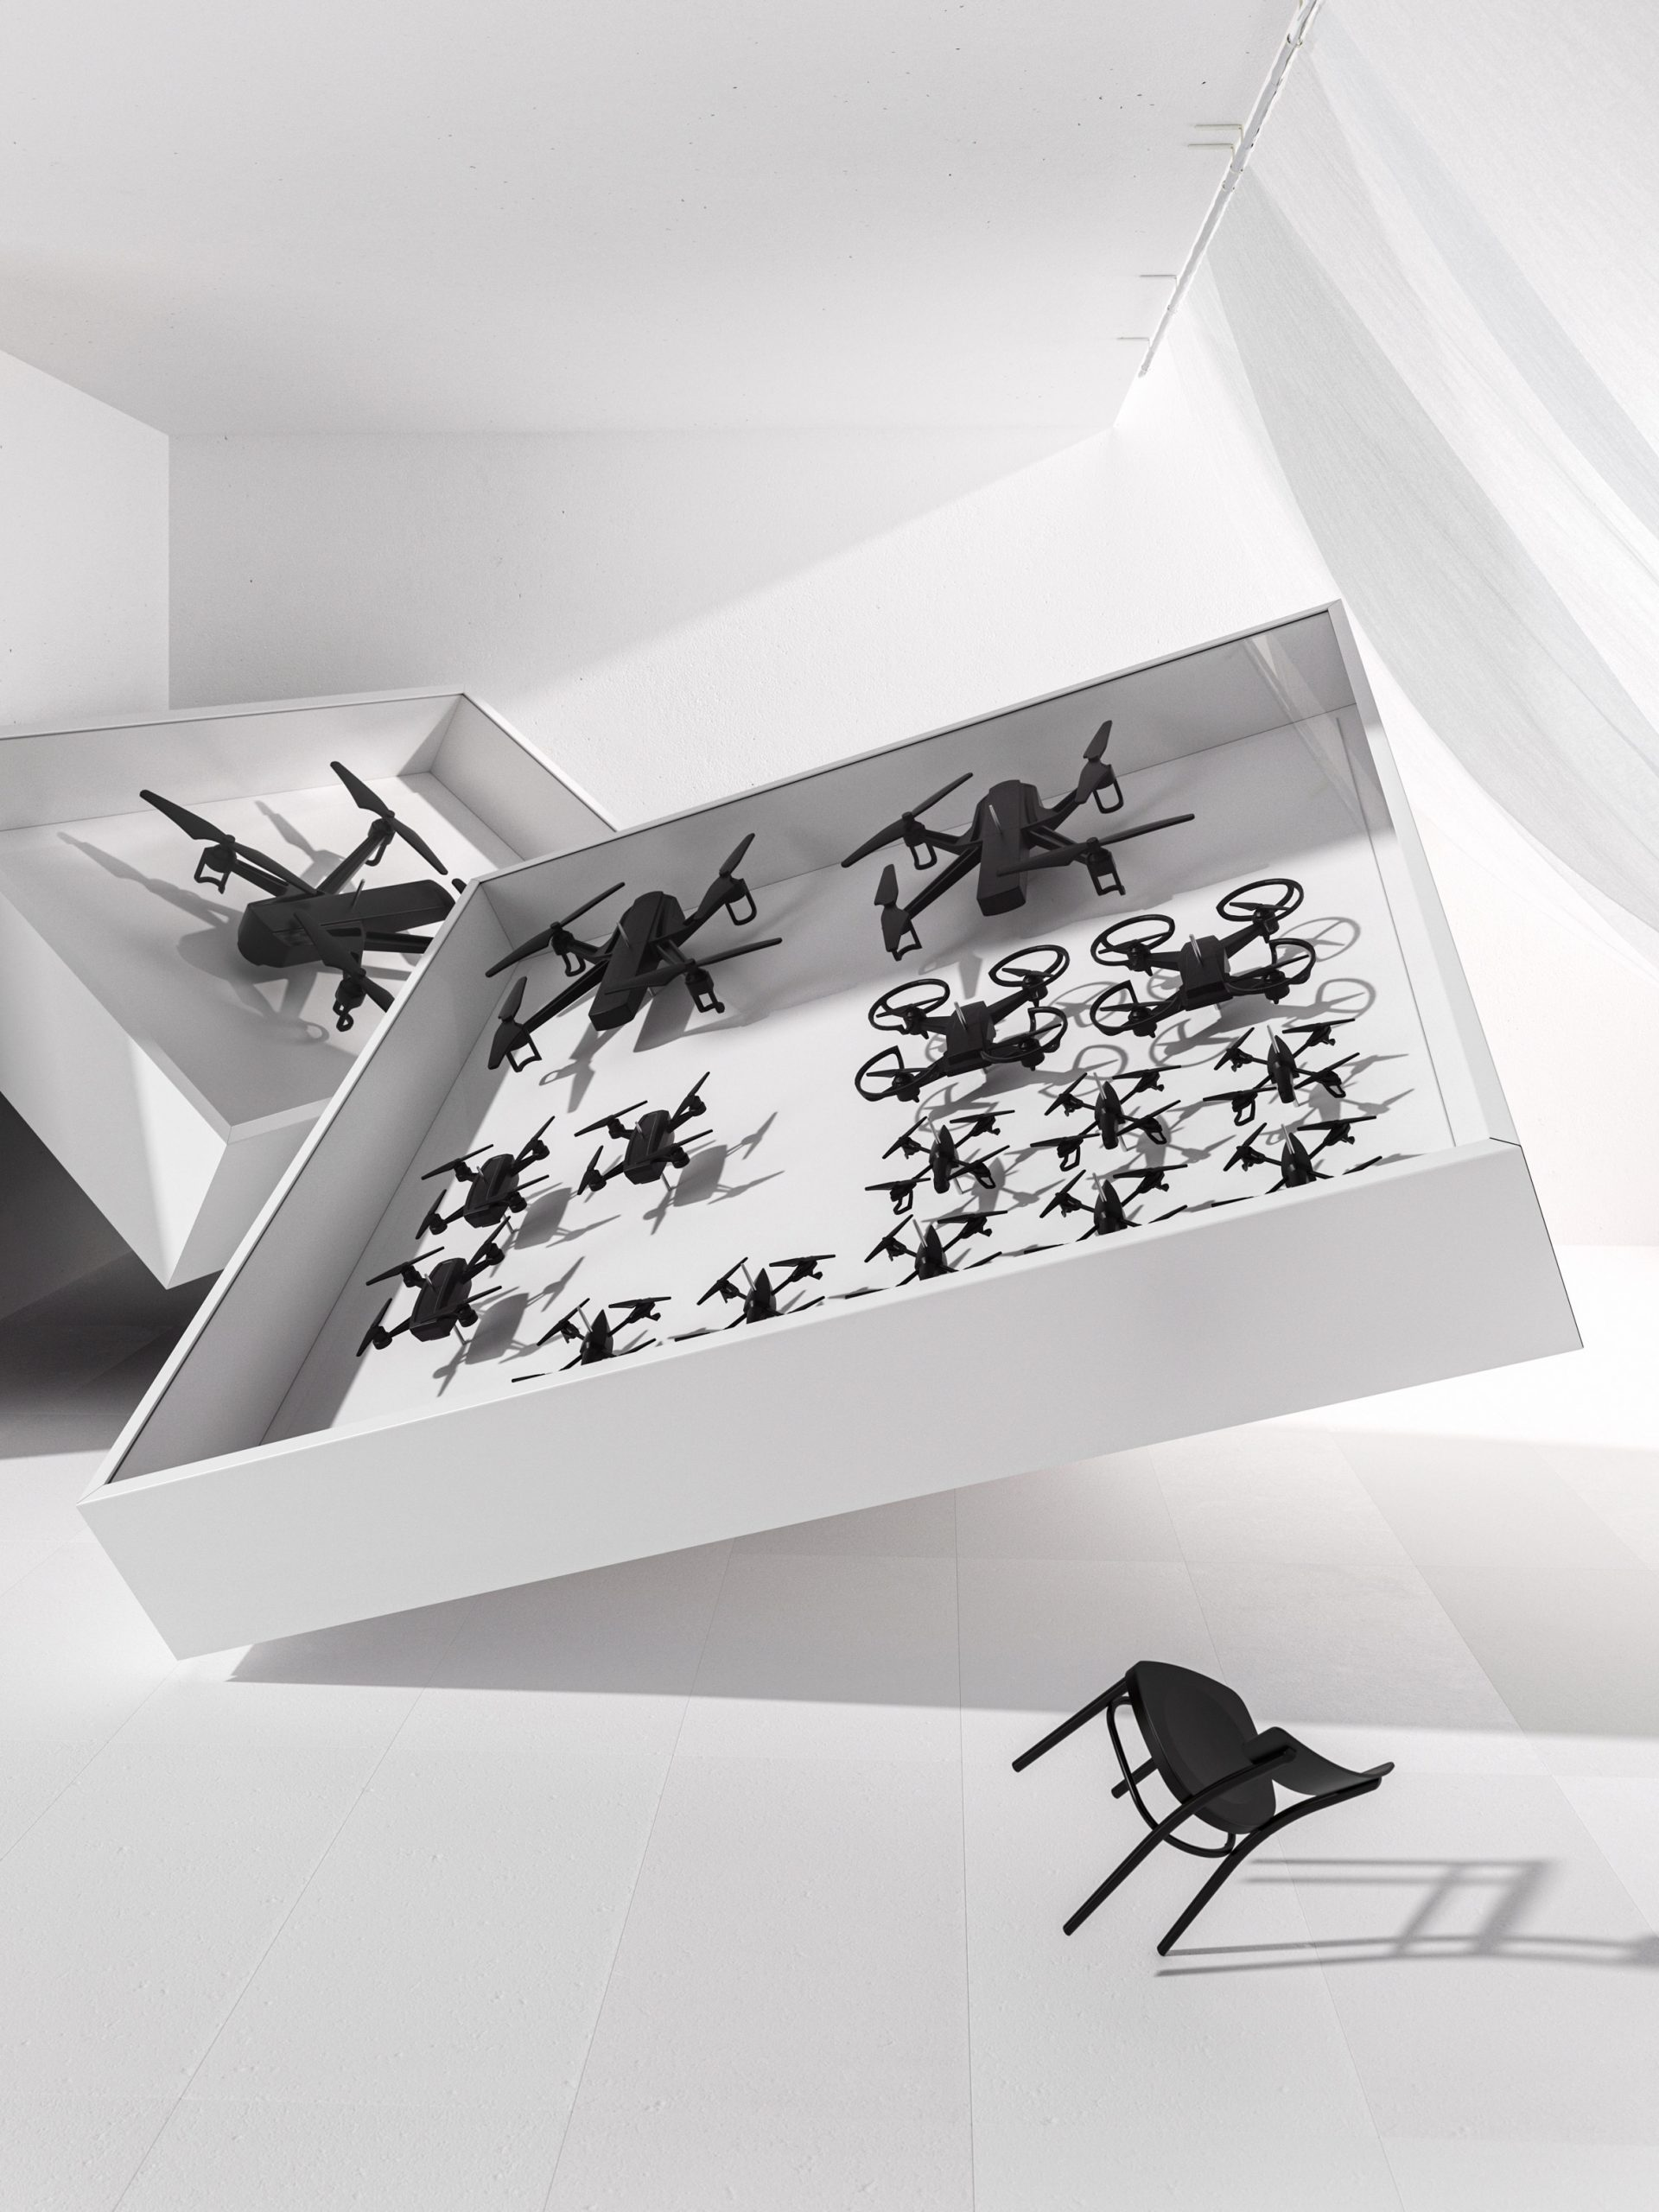 Drones in display case by Humans since 1982 for Ikea art event 2021